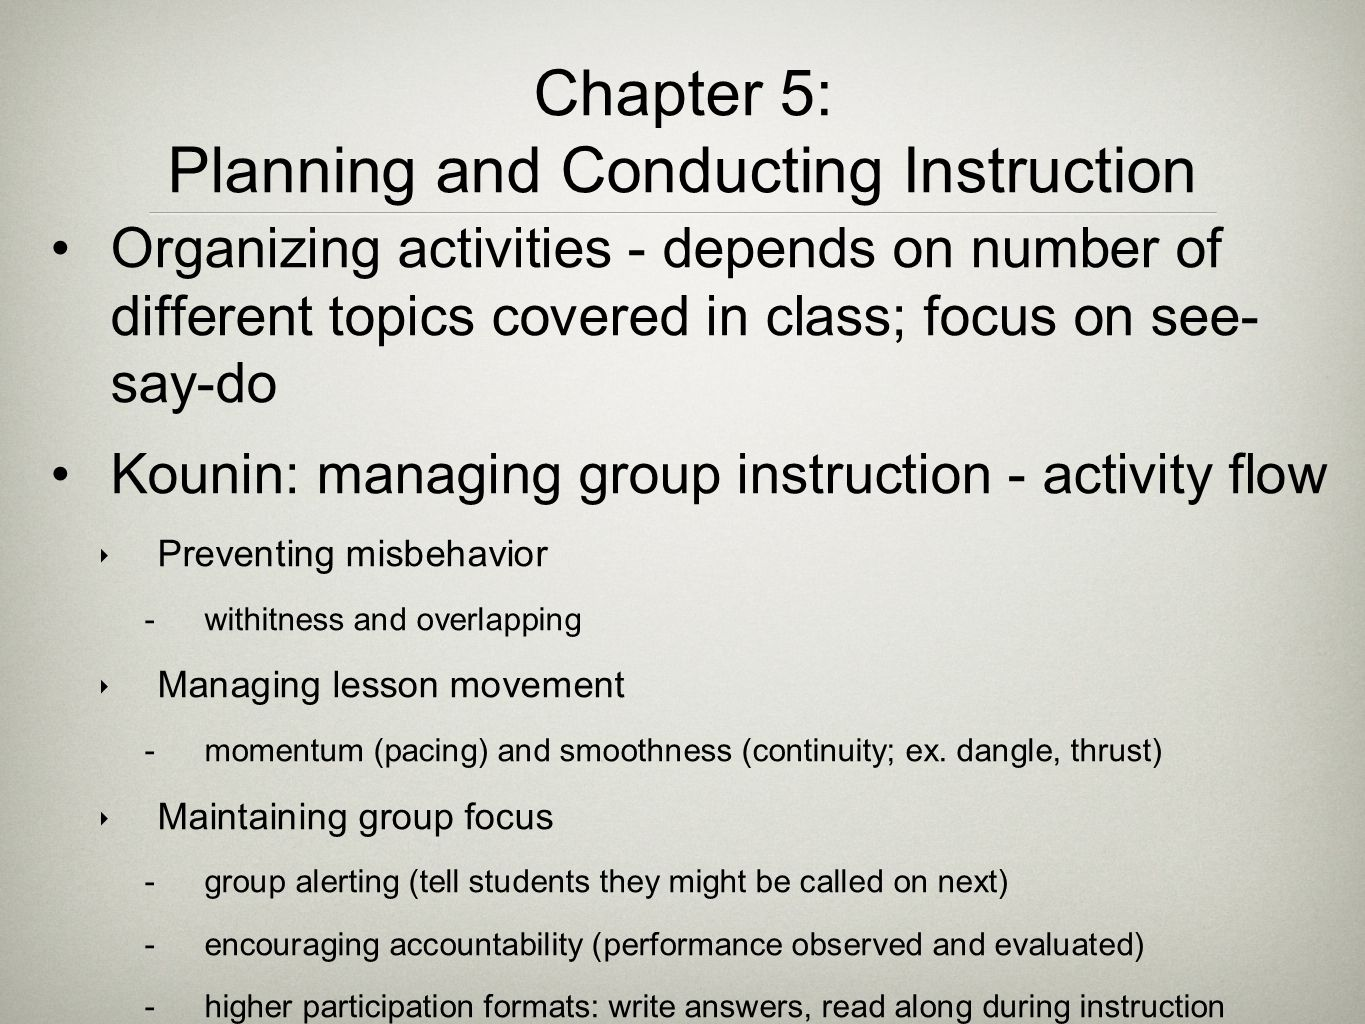 Organizing activities - depends on number of different topics covered in class; focus on see- say-do Kounin: managing group instruction - activity flo